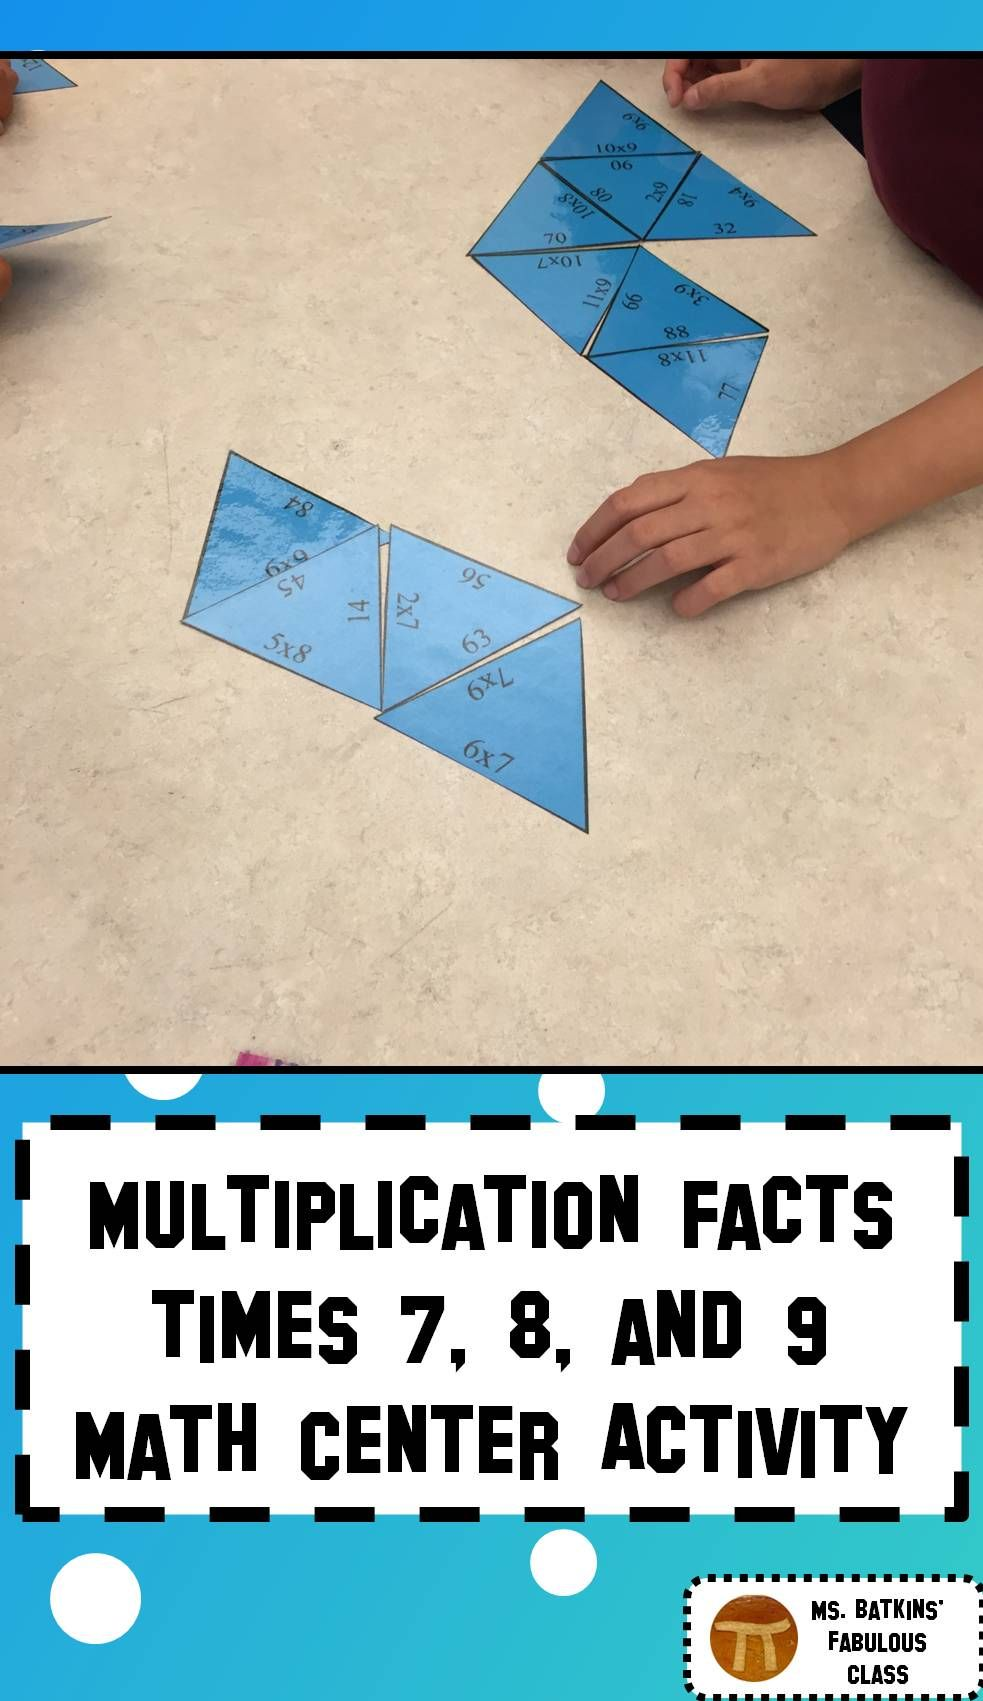 Multiplication Math Facts Puzzle for 7 , 8 , and 9 times tables ...